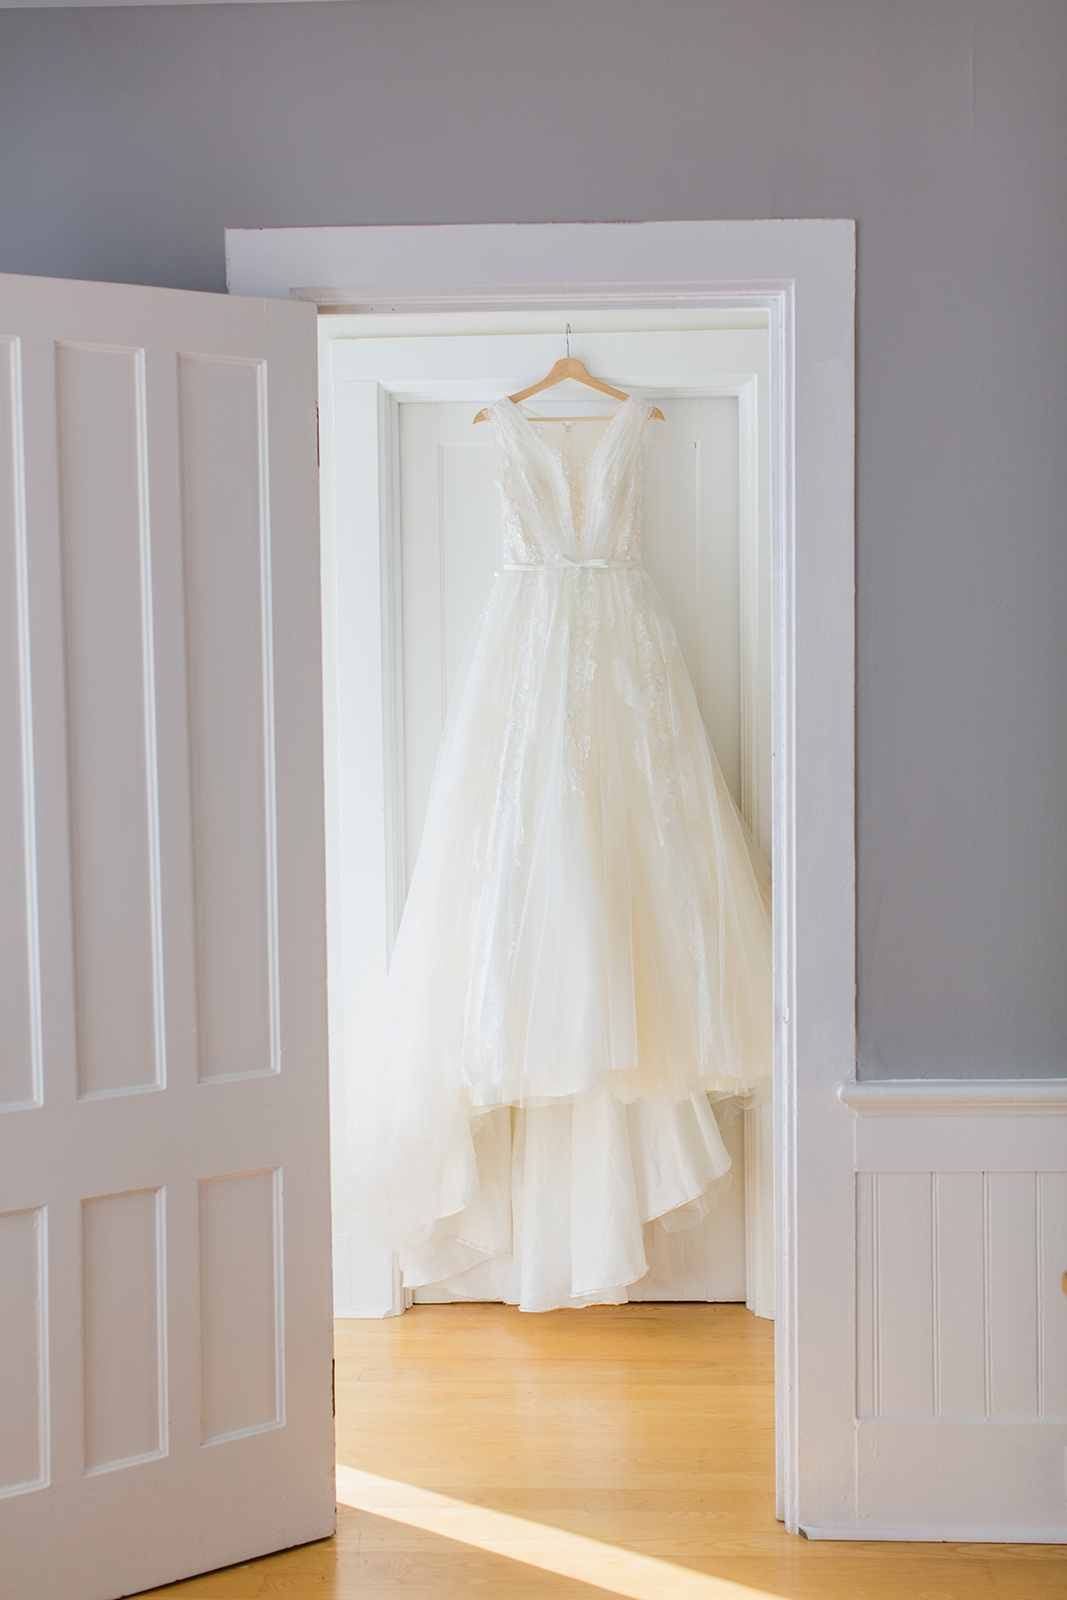 simple playful wedding dress hanging photo